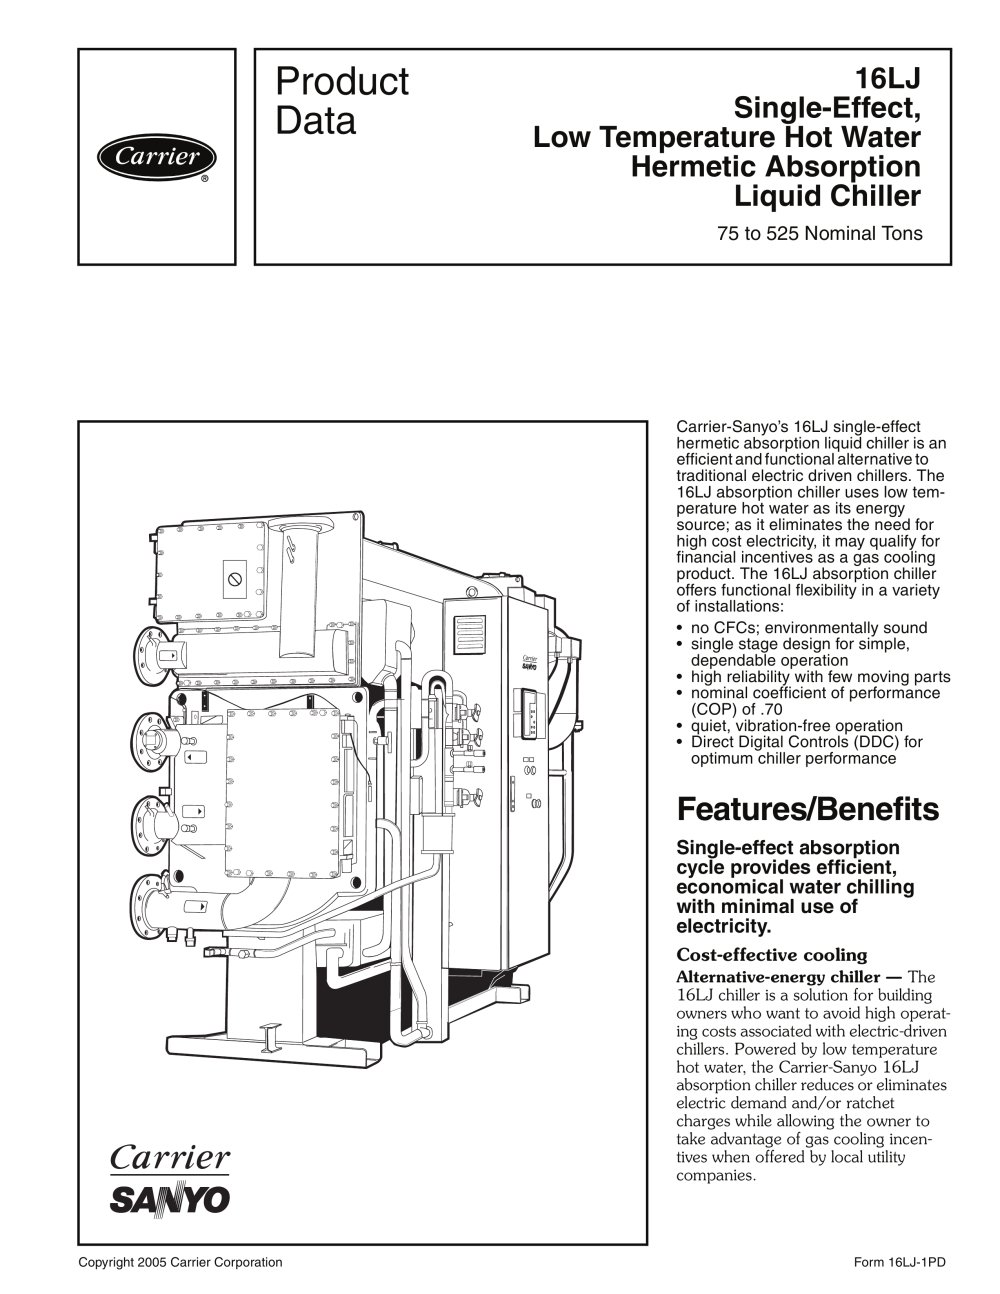 carrier rooftop package wiring diagram e30 fuse box thomas school Ford Wiring Schematic  Old Carrier Wiring Diagrams FB4ANF036 Sensor Wiring Schematic Carrier Parts List